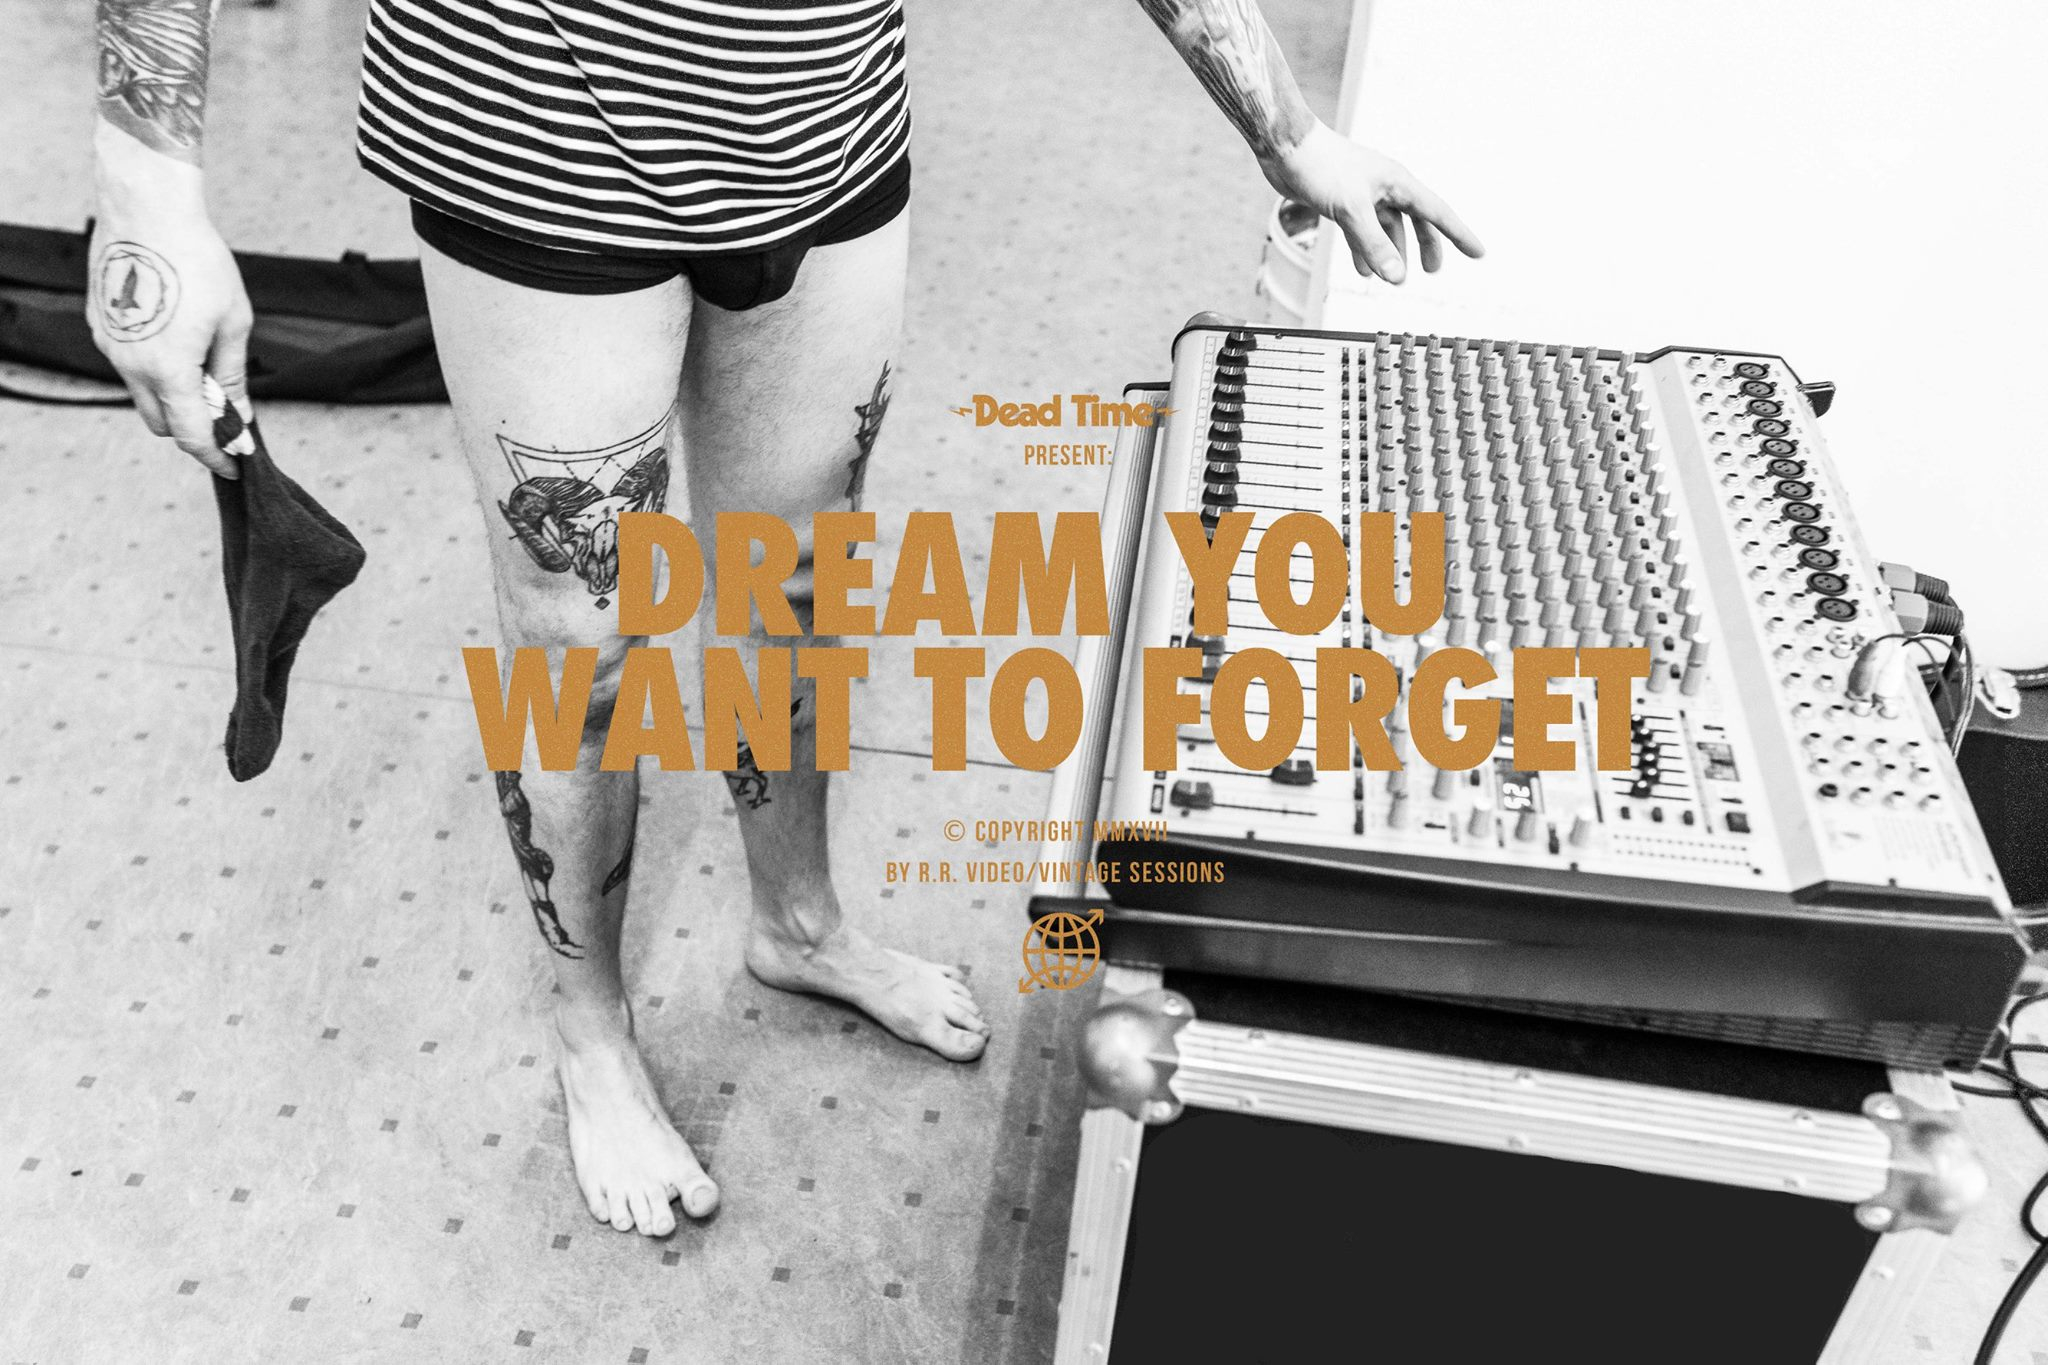 Dead Time – Dream You Want to Forget | teledysk | backstage